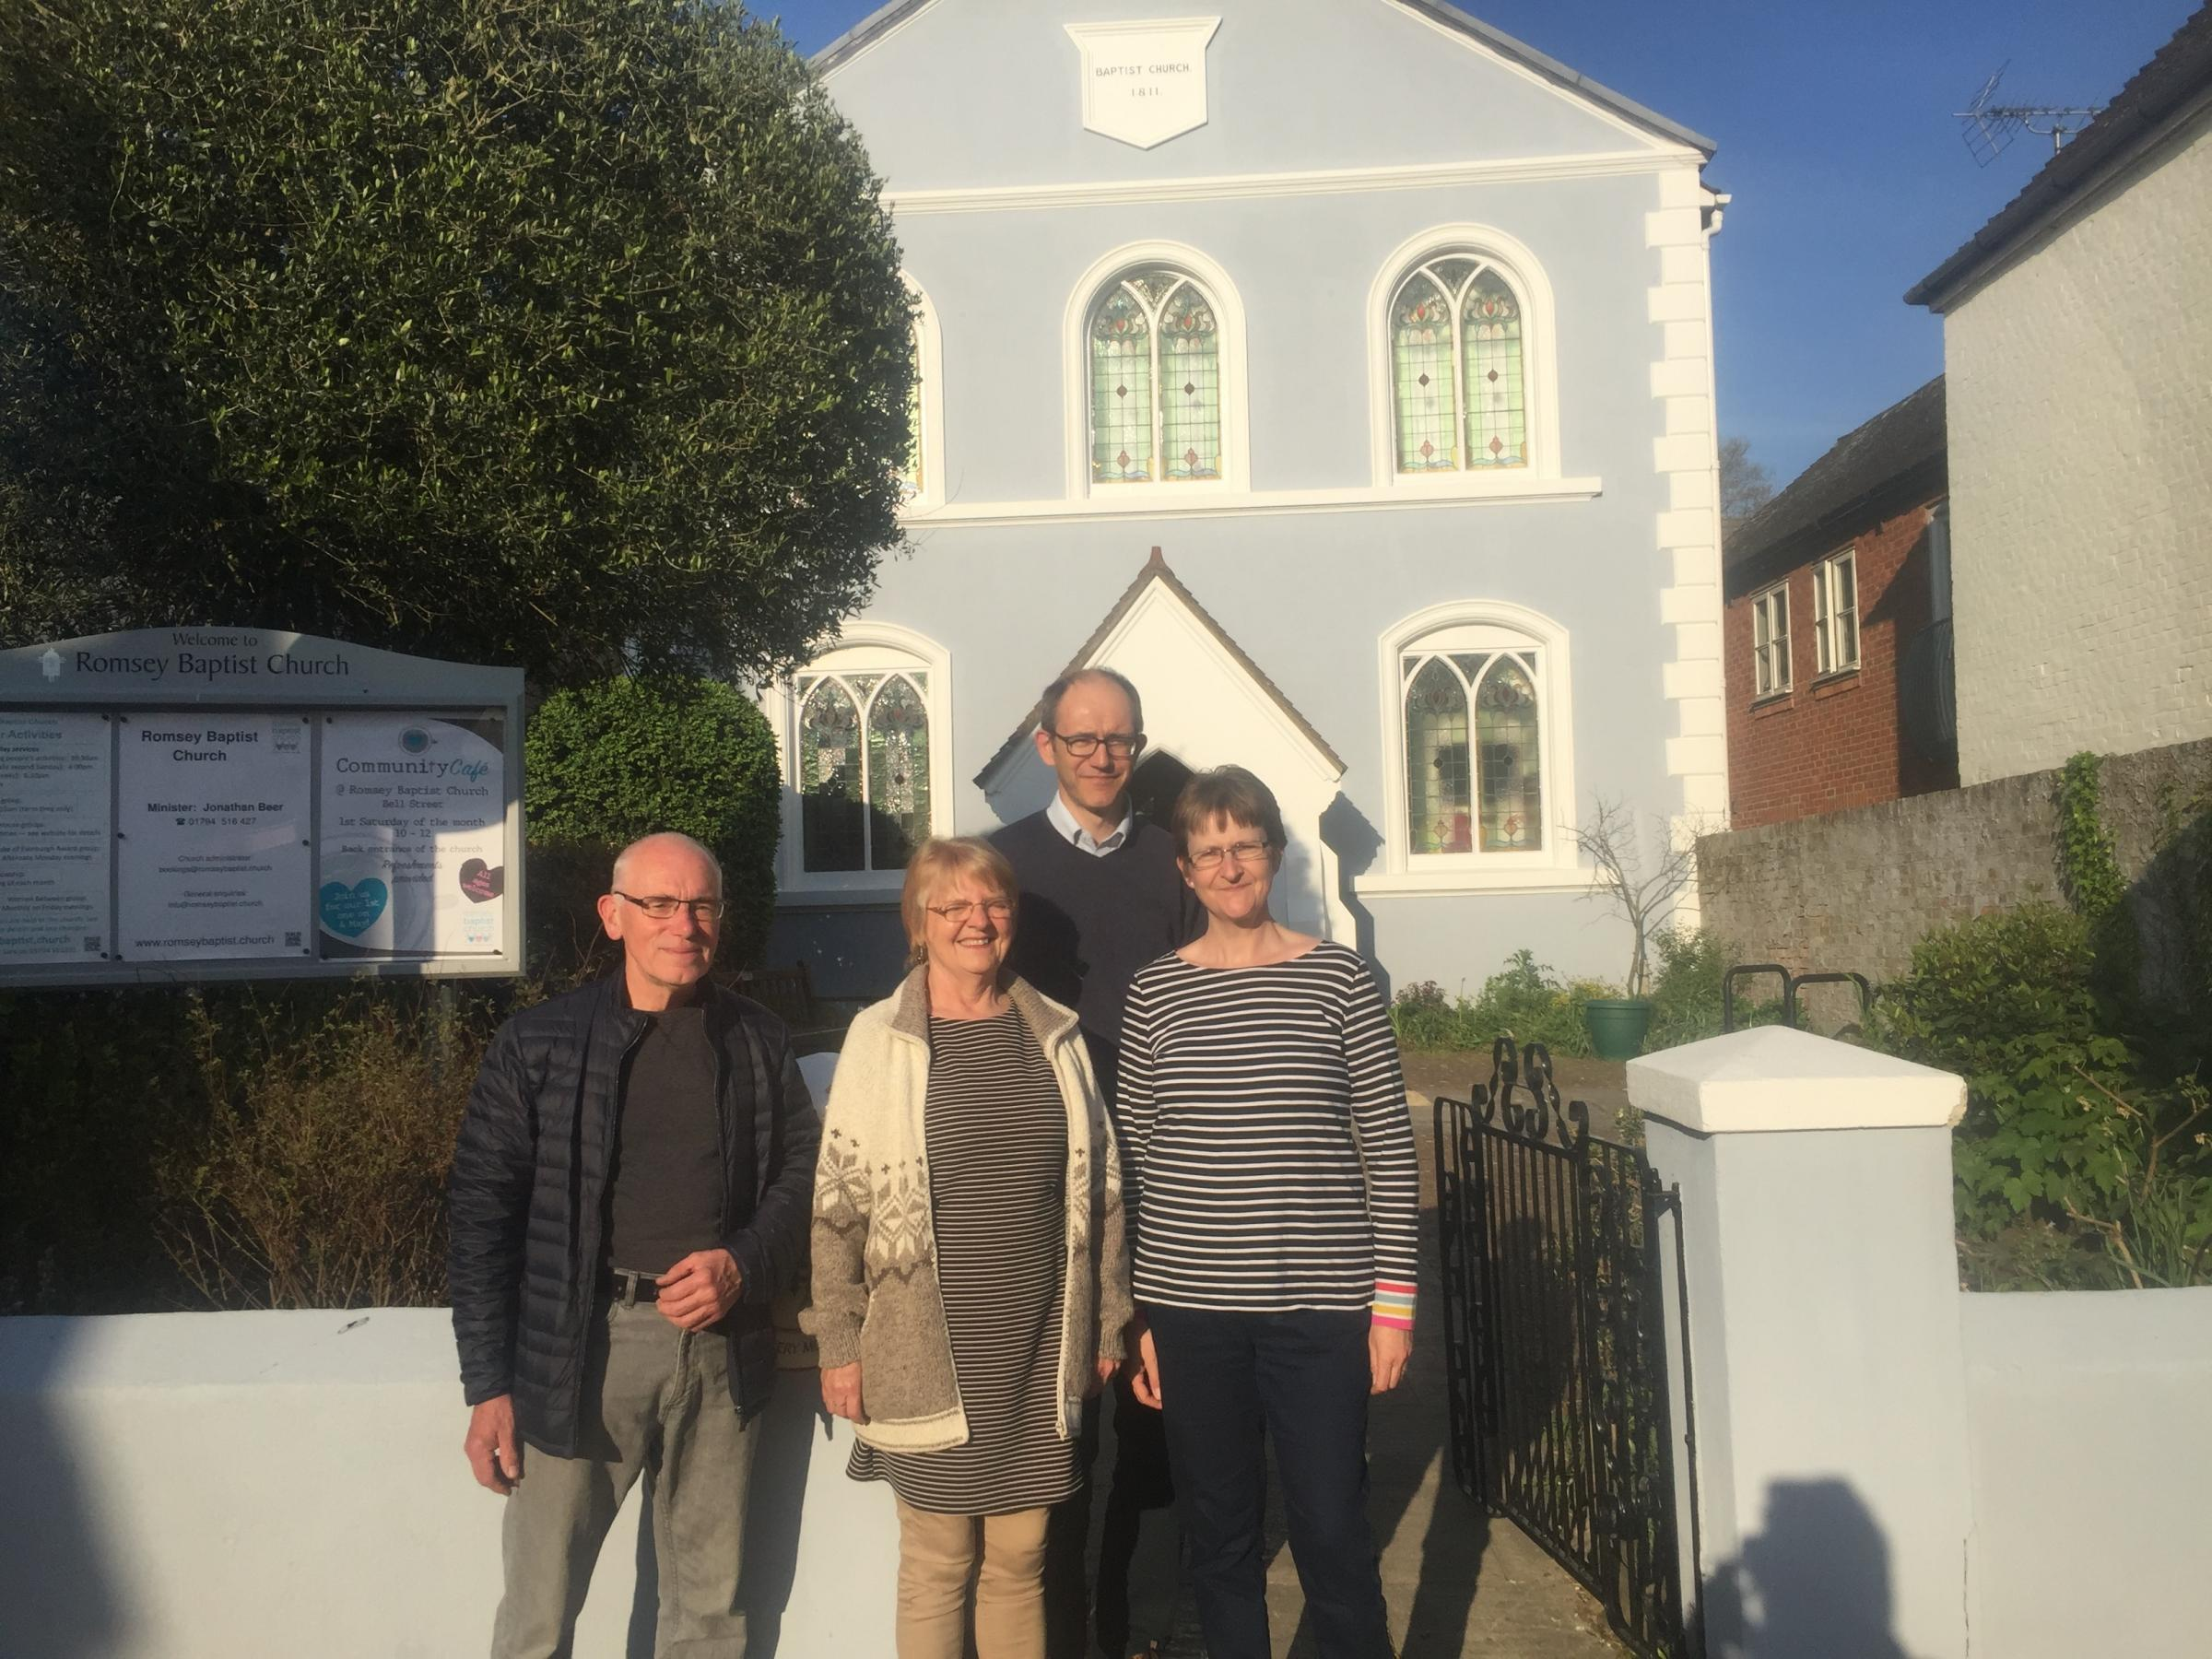 Bronwen Clemons with members of the mission team from Romsey Baptist Church